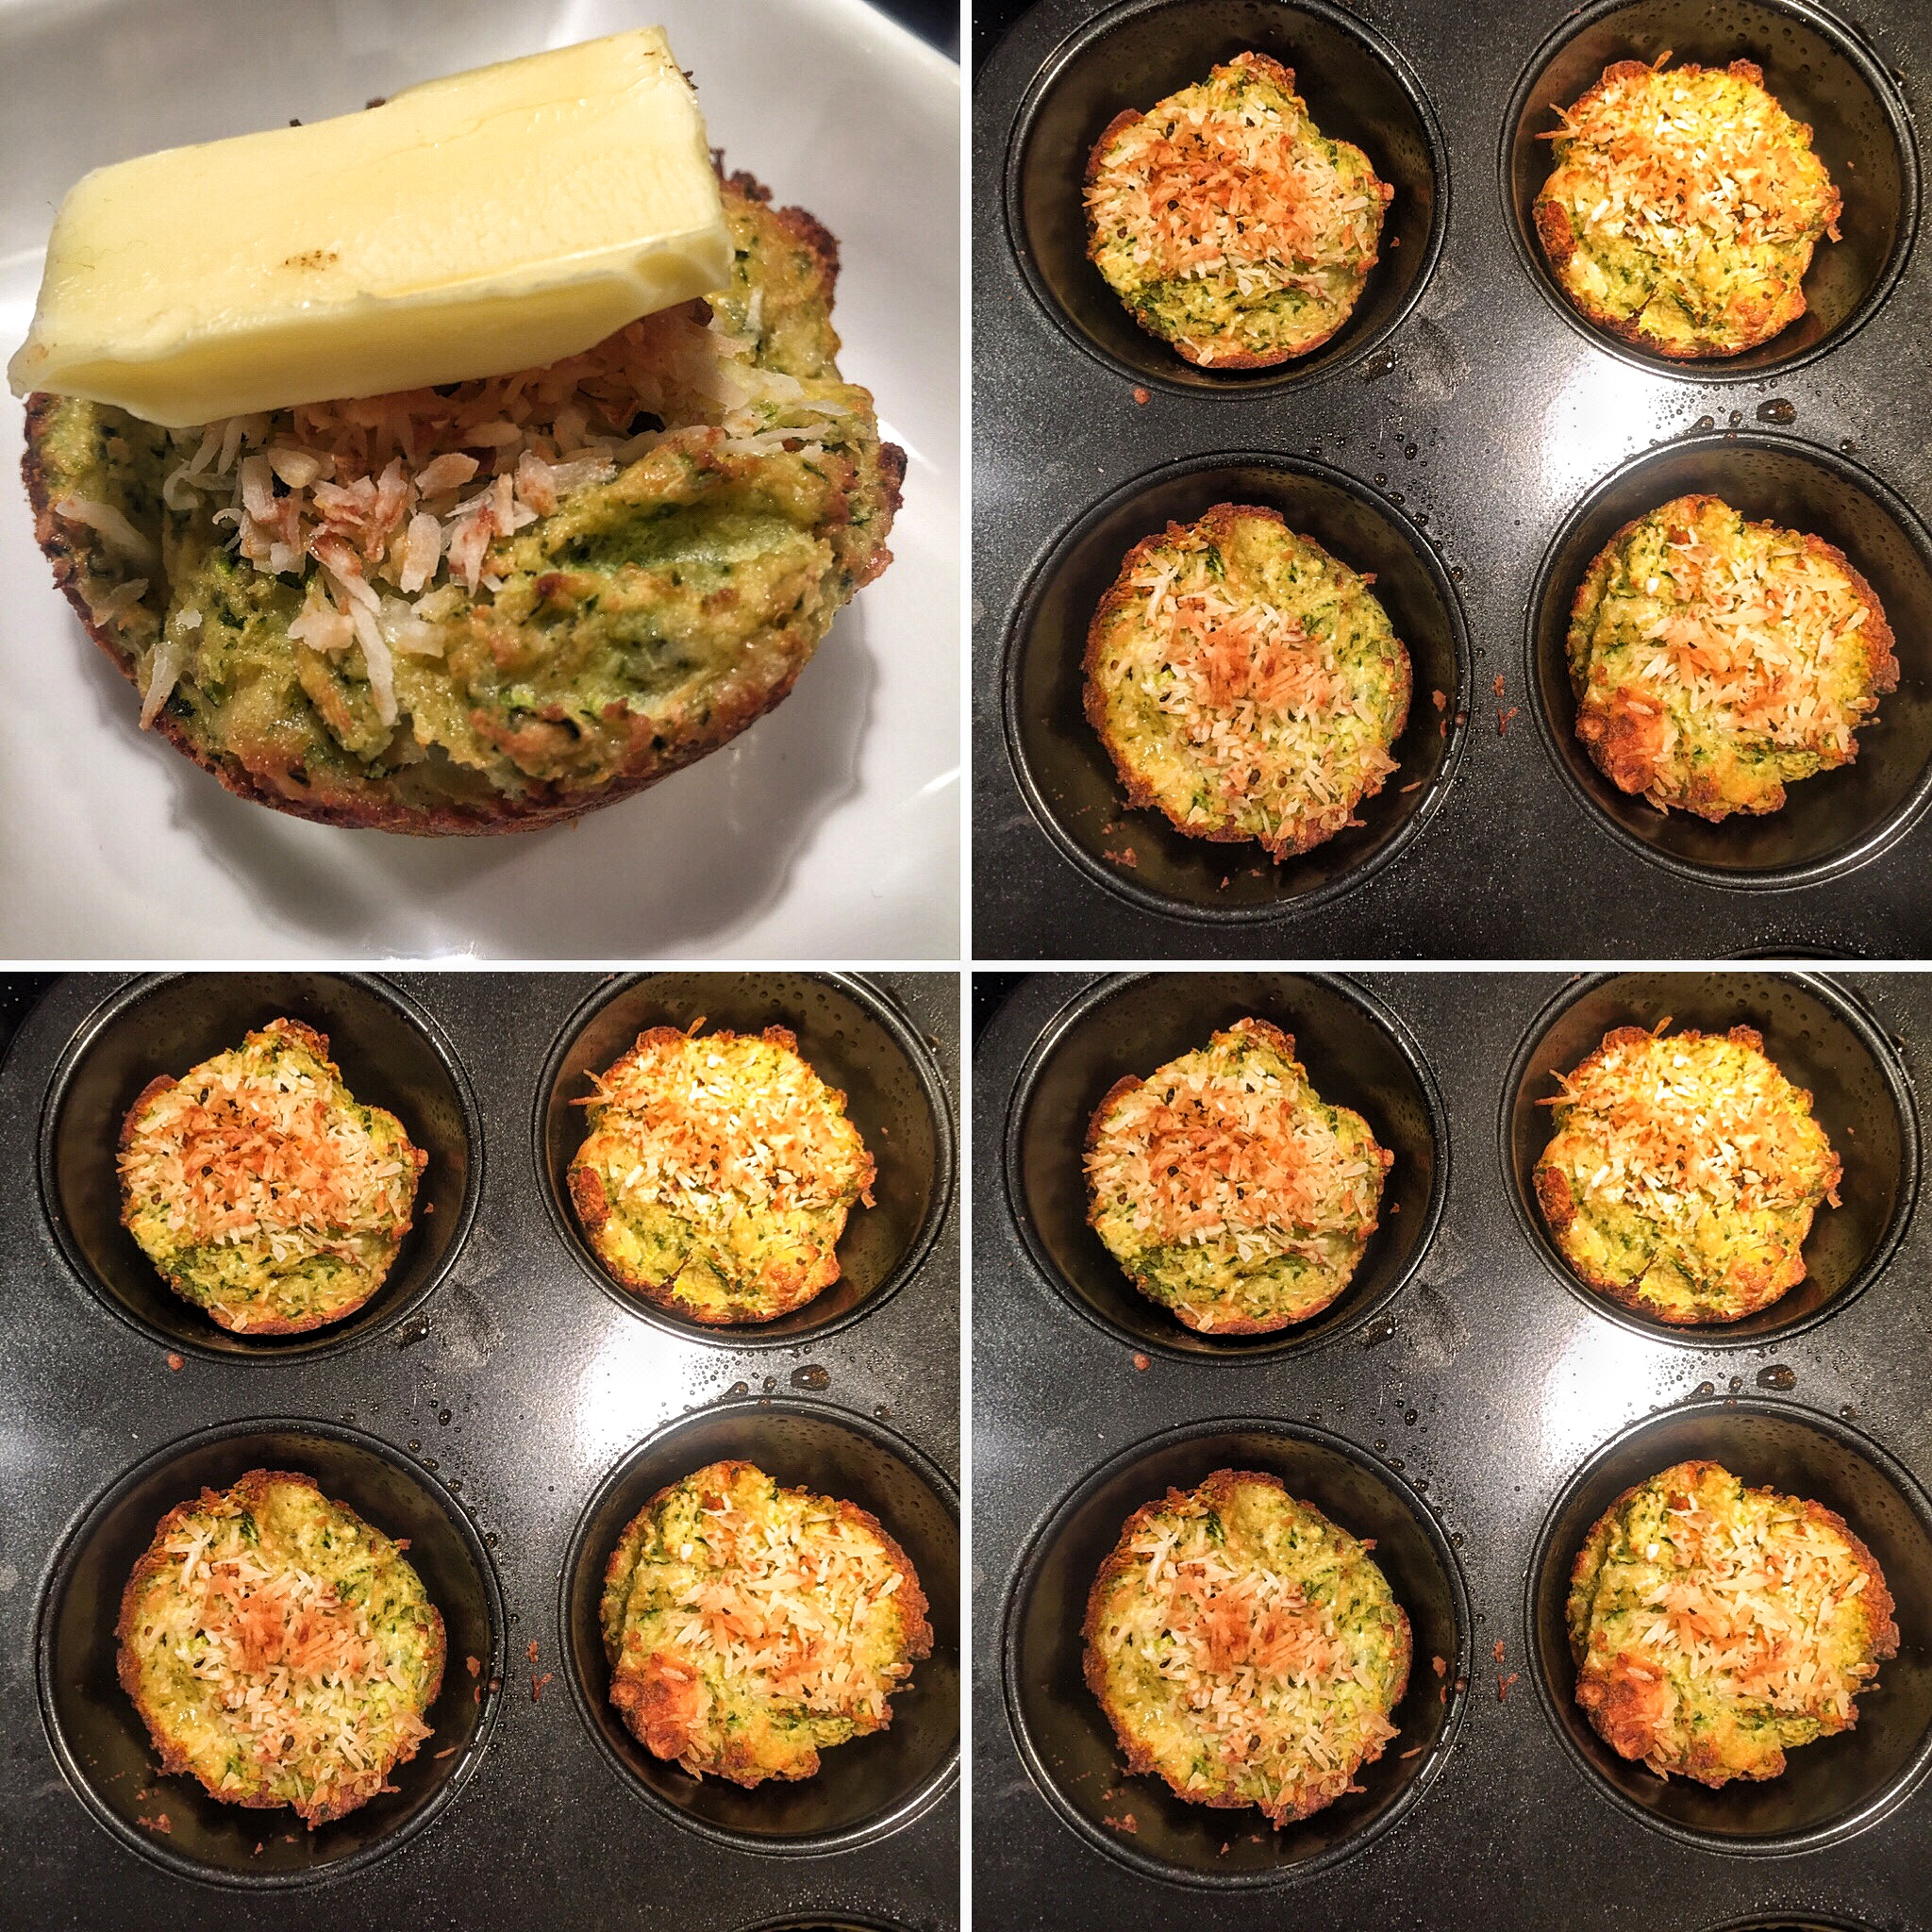 Zucchini muffins are easy to grab and go.